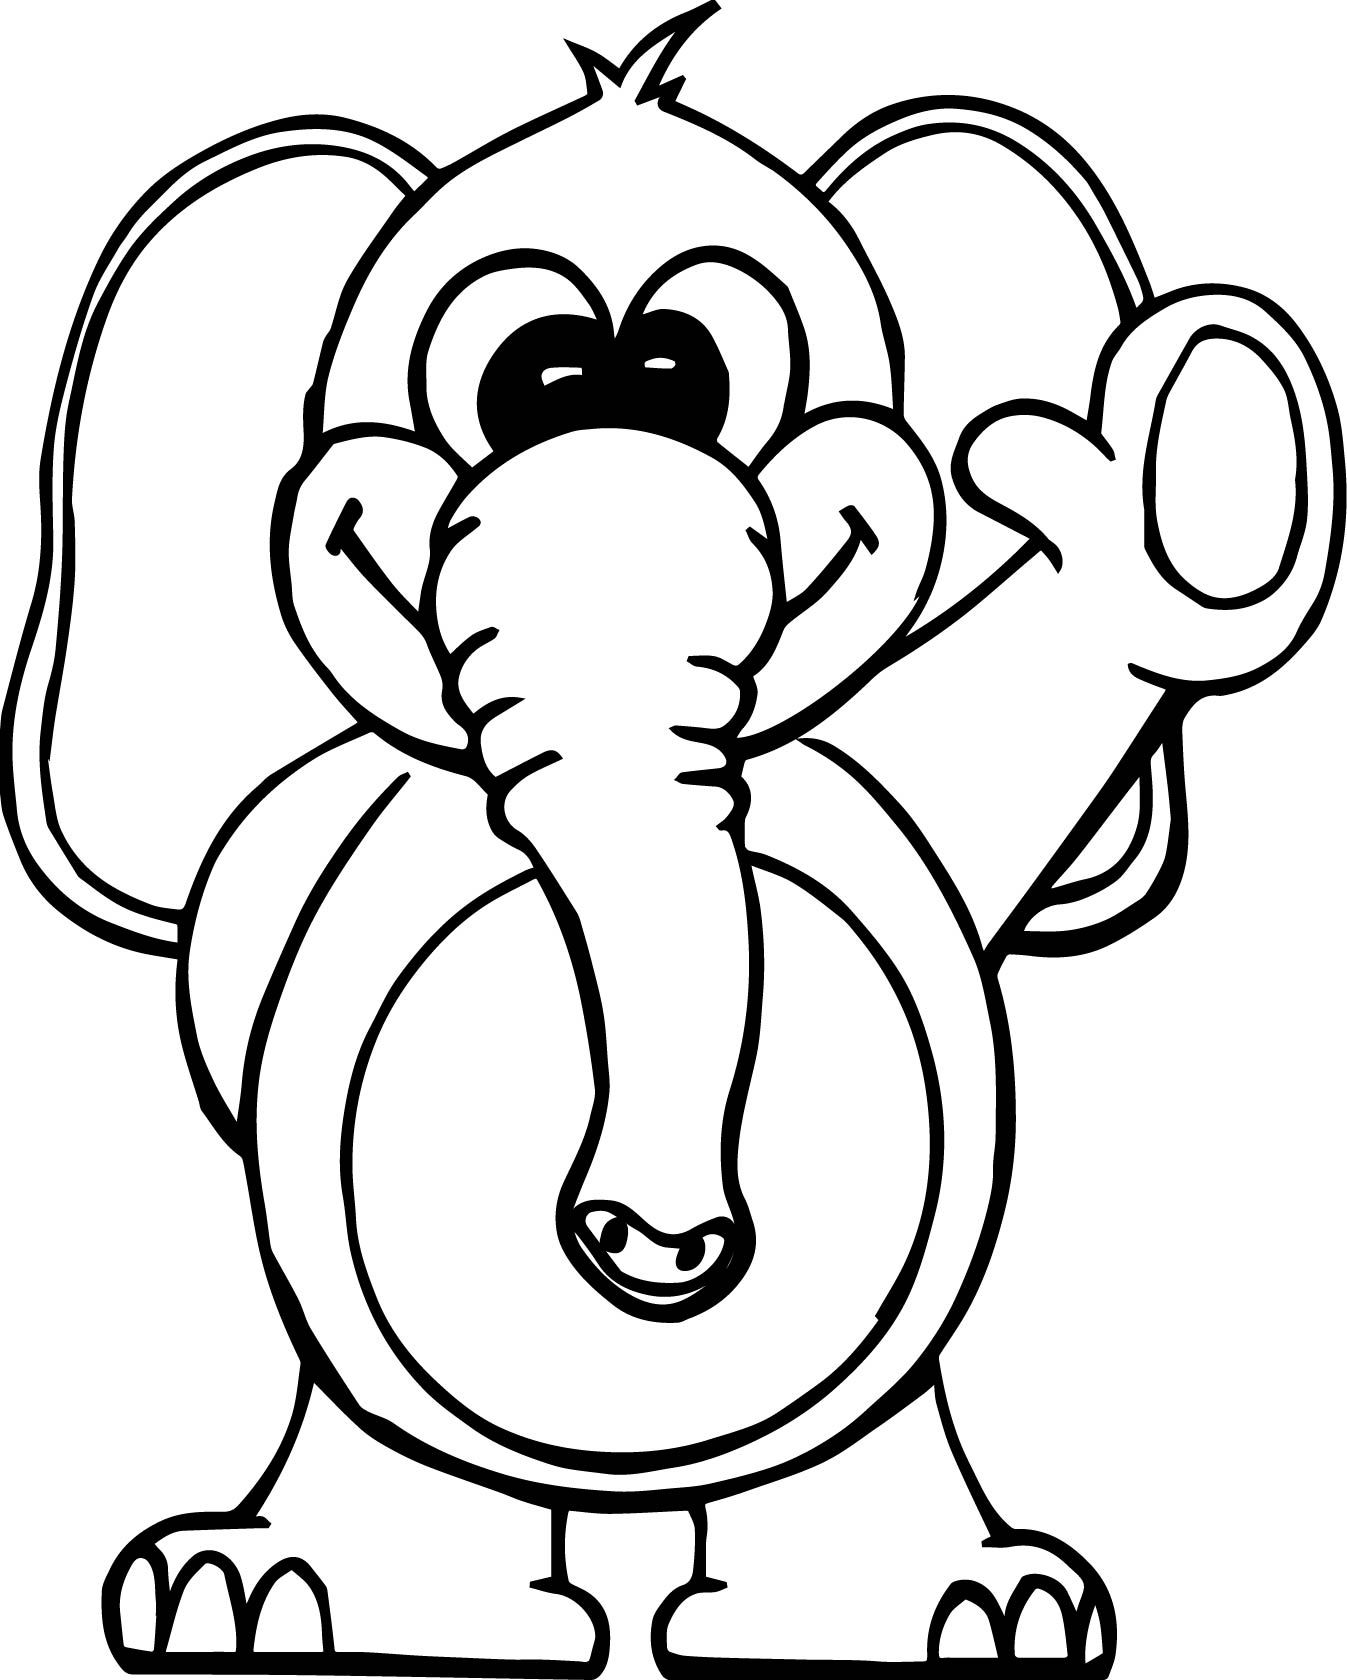 Cool Hello Elephant Coloring Page